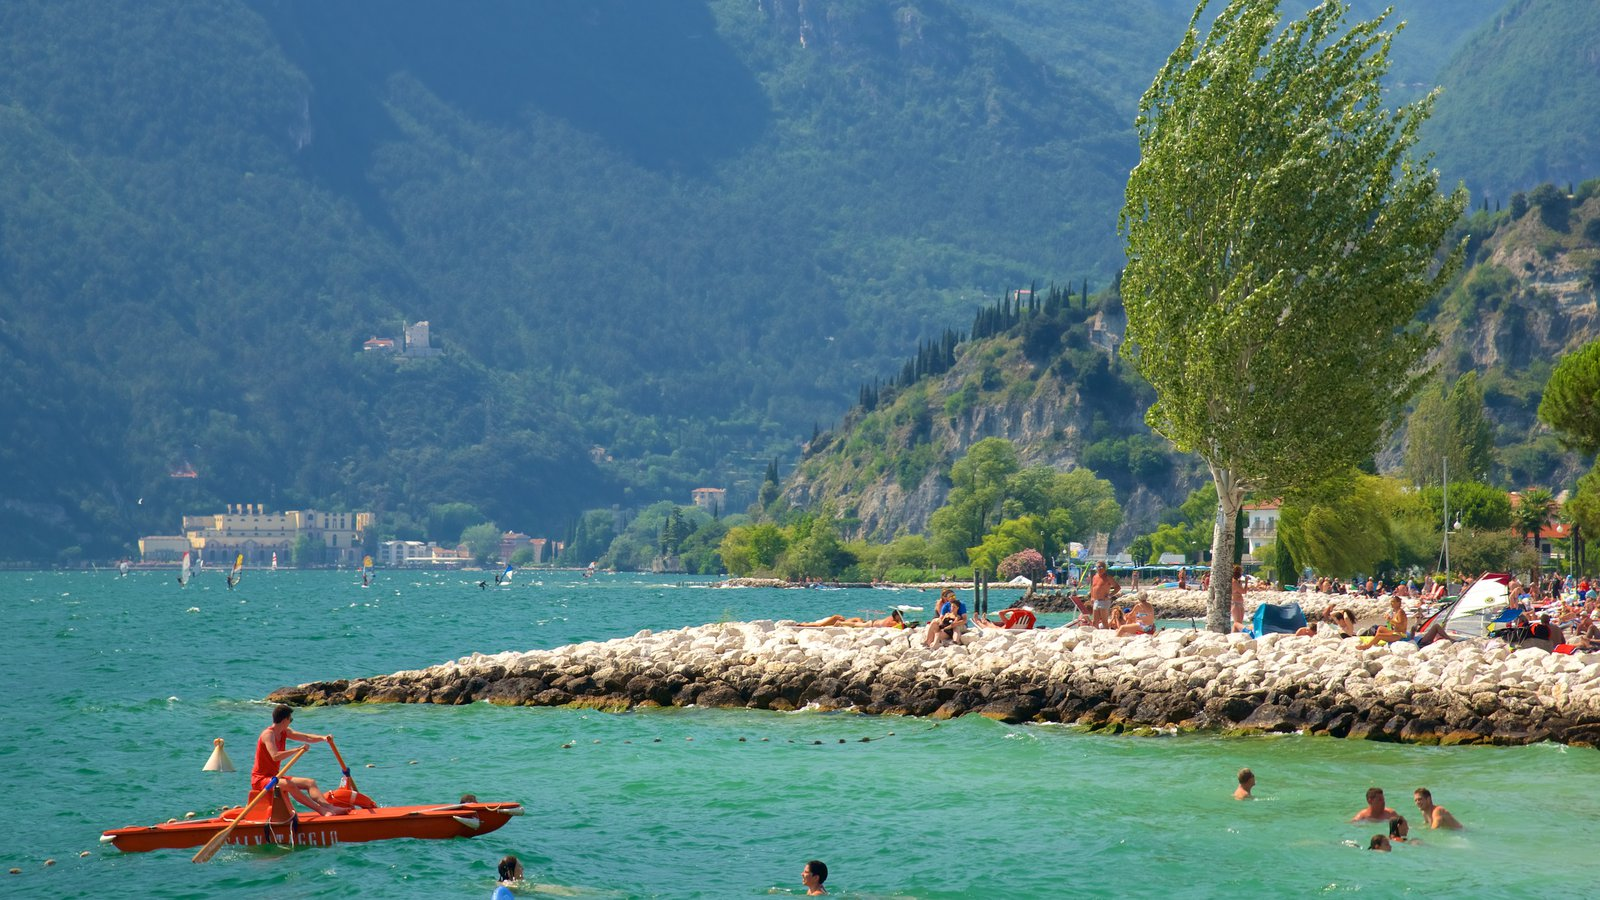 Nago-Torbole which includes rugged coastline